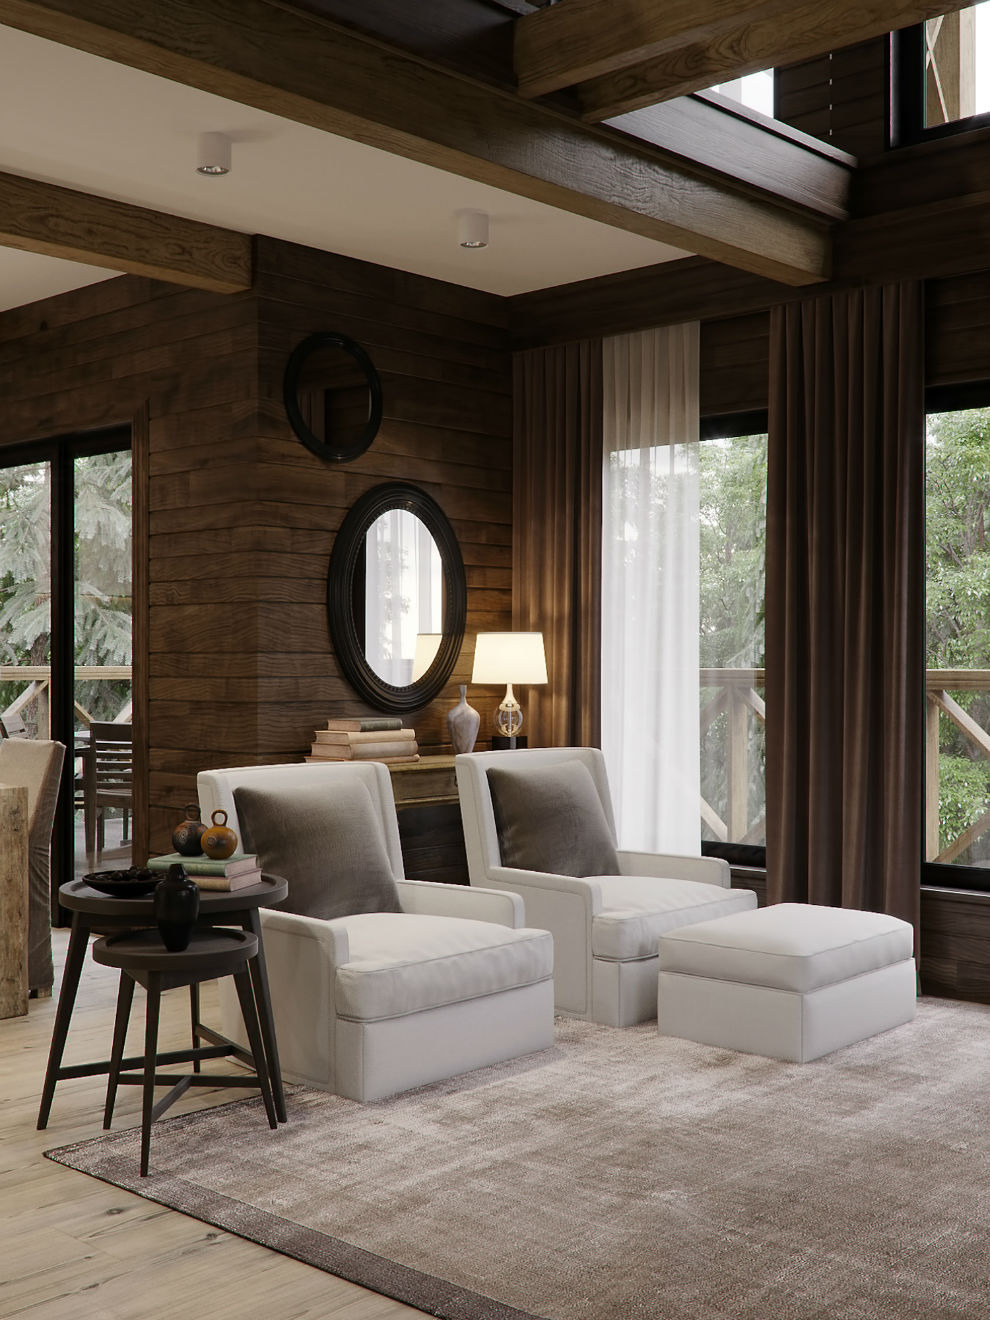 Interior Design Chalet Style Best Of Country House In Chalet Style by Dmitriy Kurilov